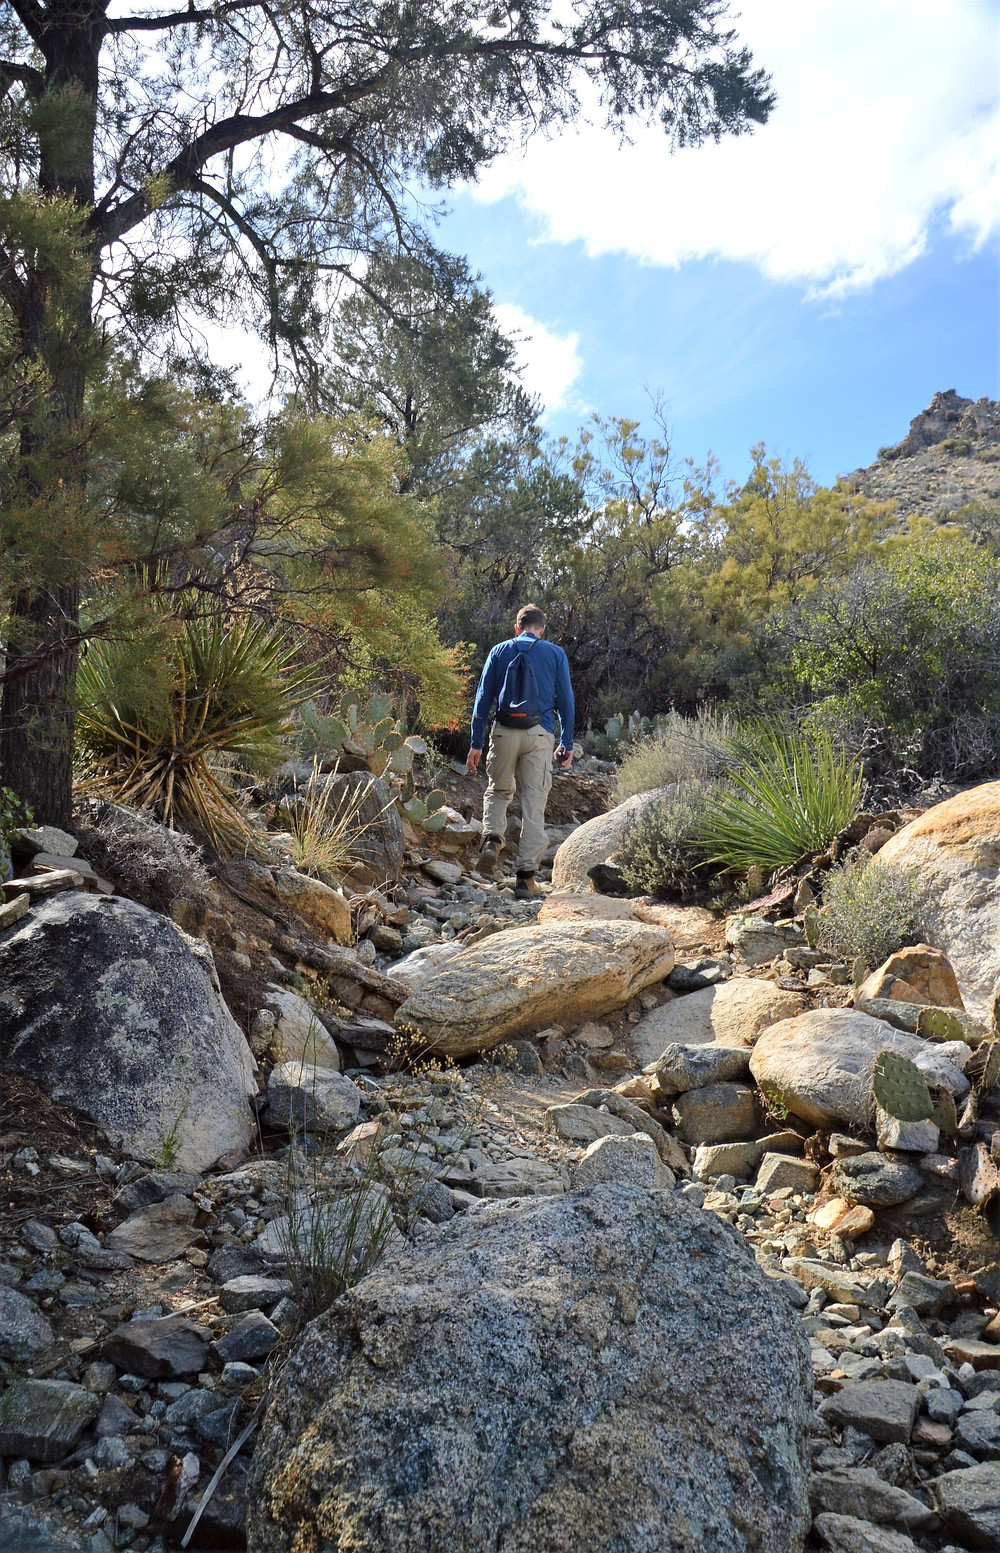 Hiking over rocky and eroded section of Cactus Springs trail in the Santa Rosa Mountain Wilderness